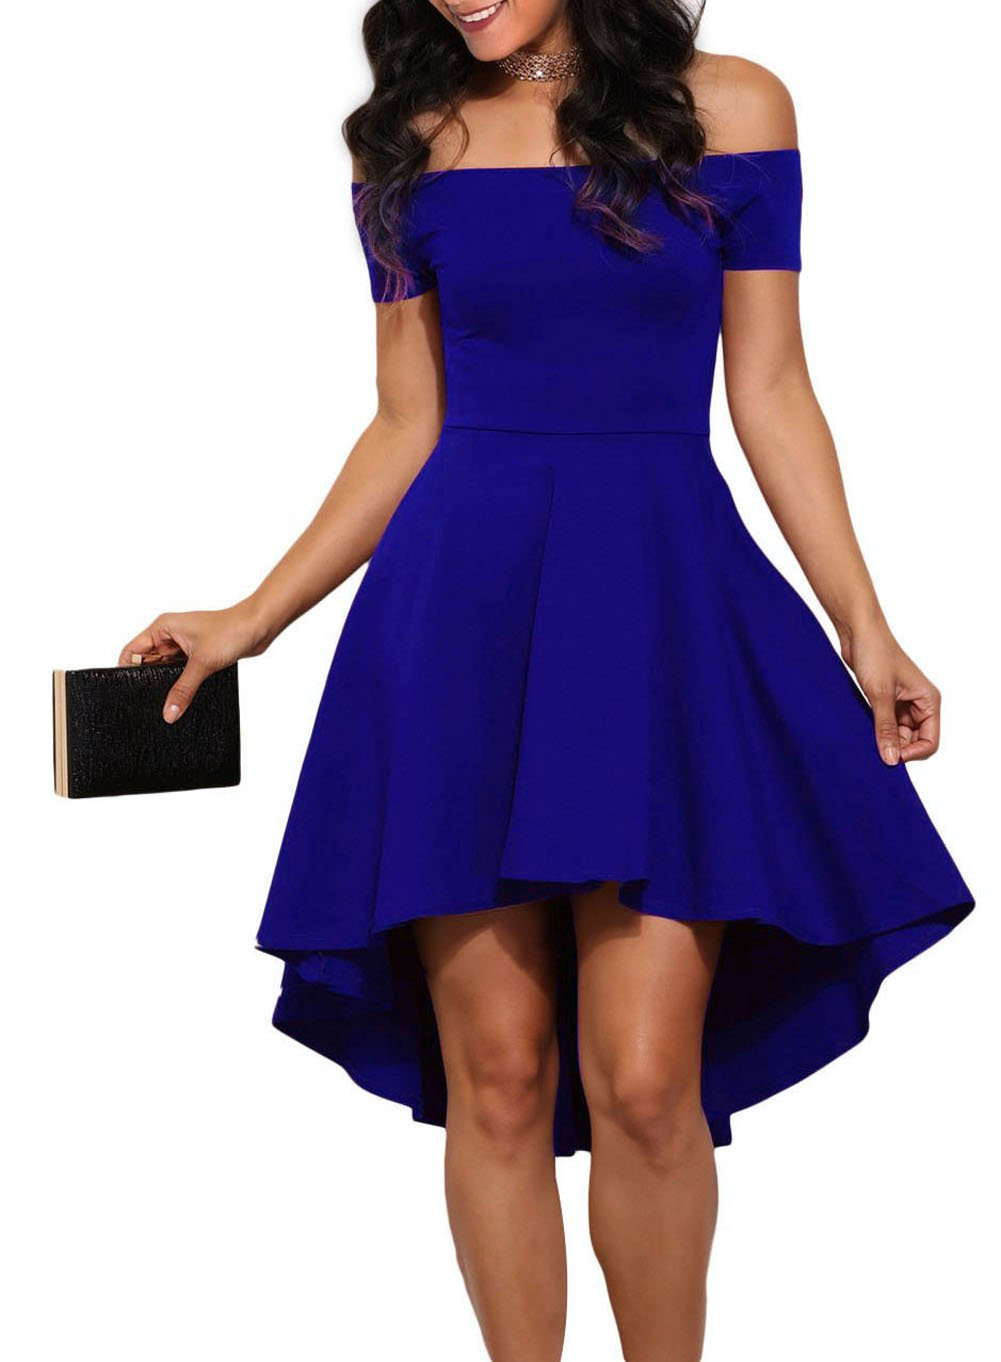 LOSRLY Womens Casual Retro Open Shoulder Flare Wedding Guest Dress Prime Royal Blue L 12 14